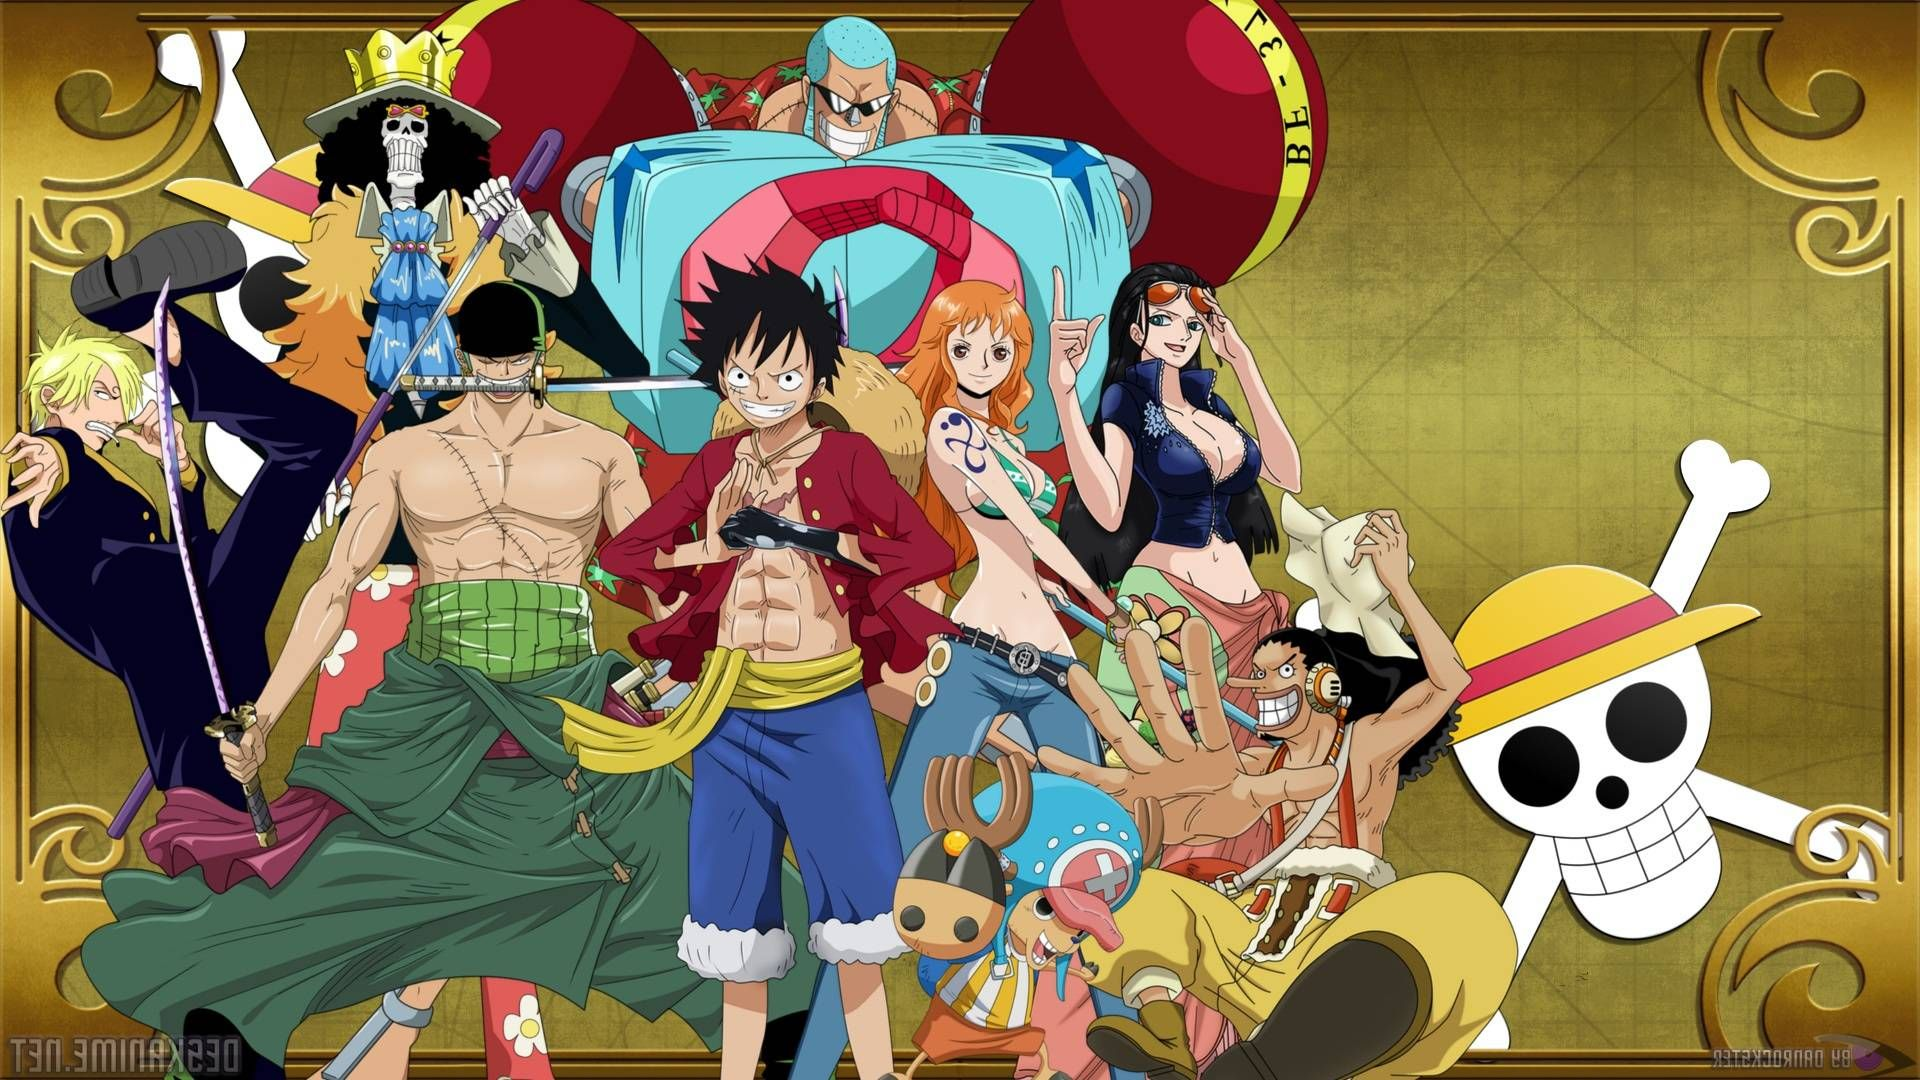 One Piece Hd Wallpapers One Piece Wallpapers Best Wallpapers One Piece Hd Wallpapers Custom New Tab In 2020 Android Wallpaper Anime One Piece Wallpaper Iphone Anime